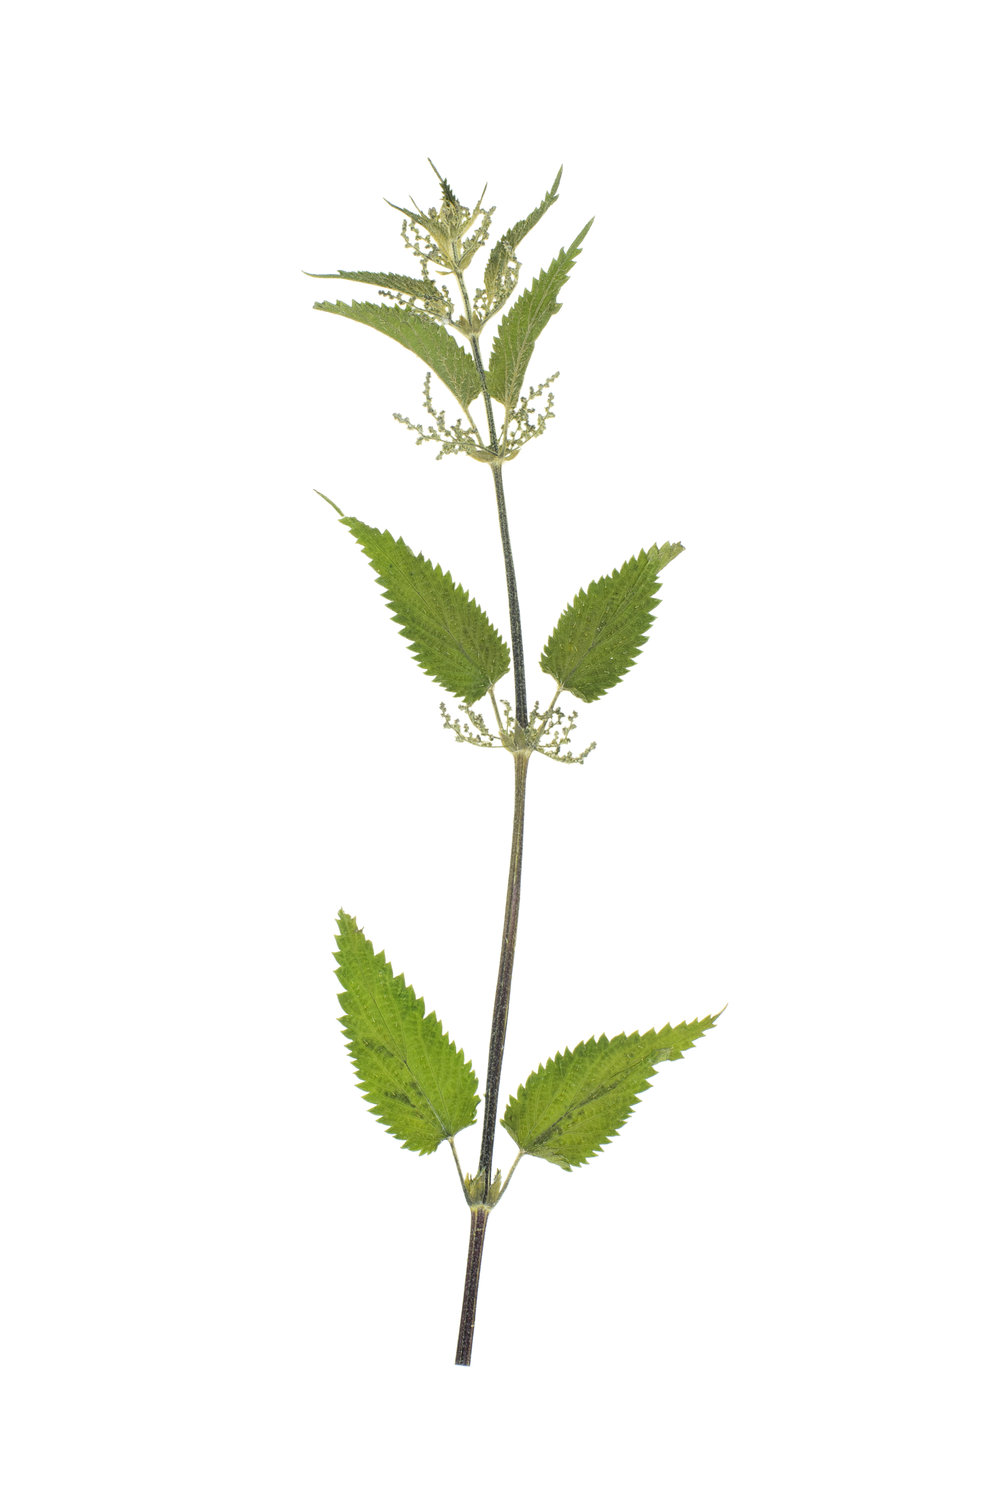 Stinging Nettle / Urtica dioica